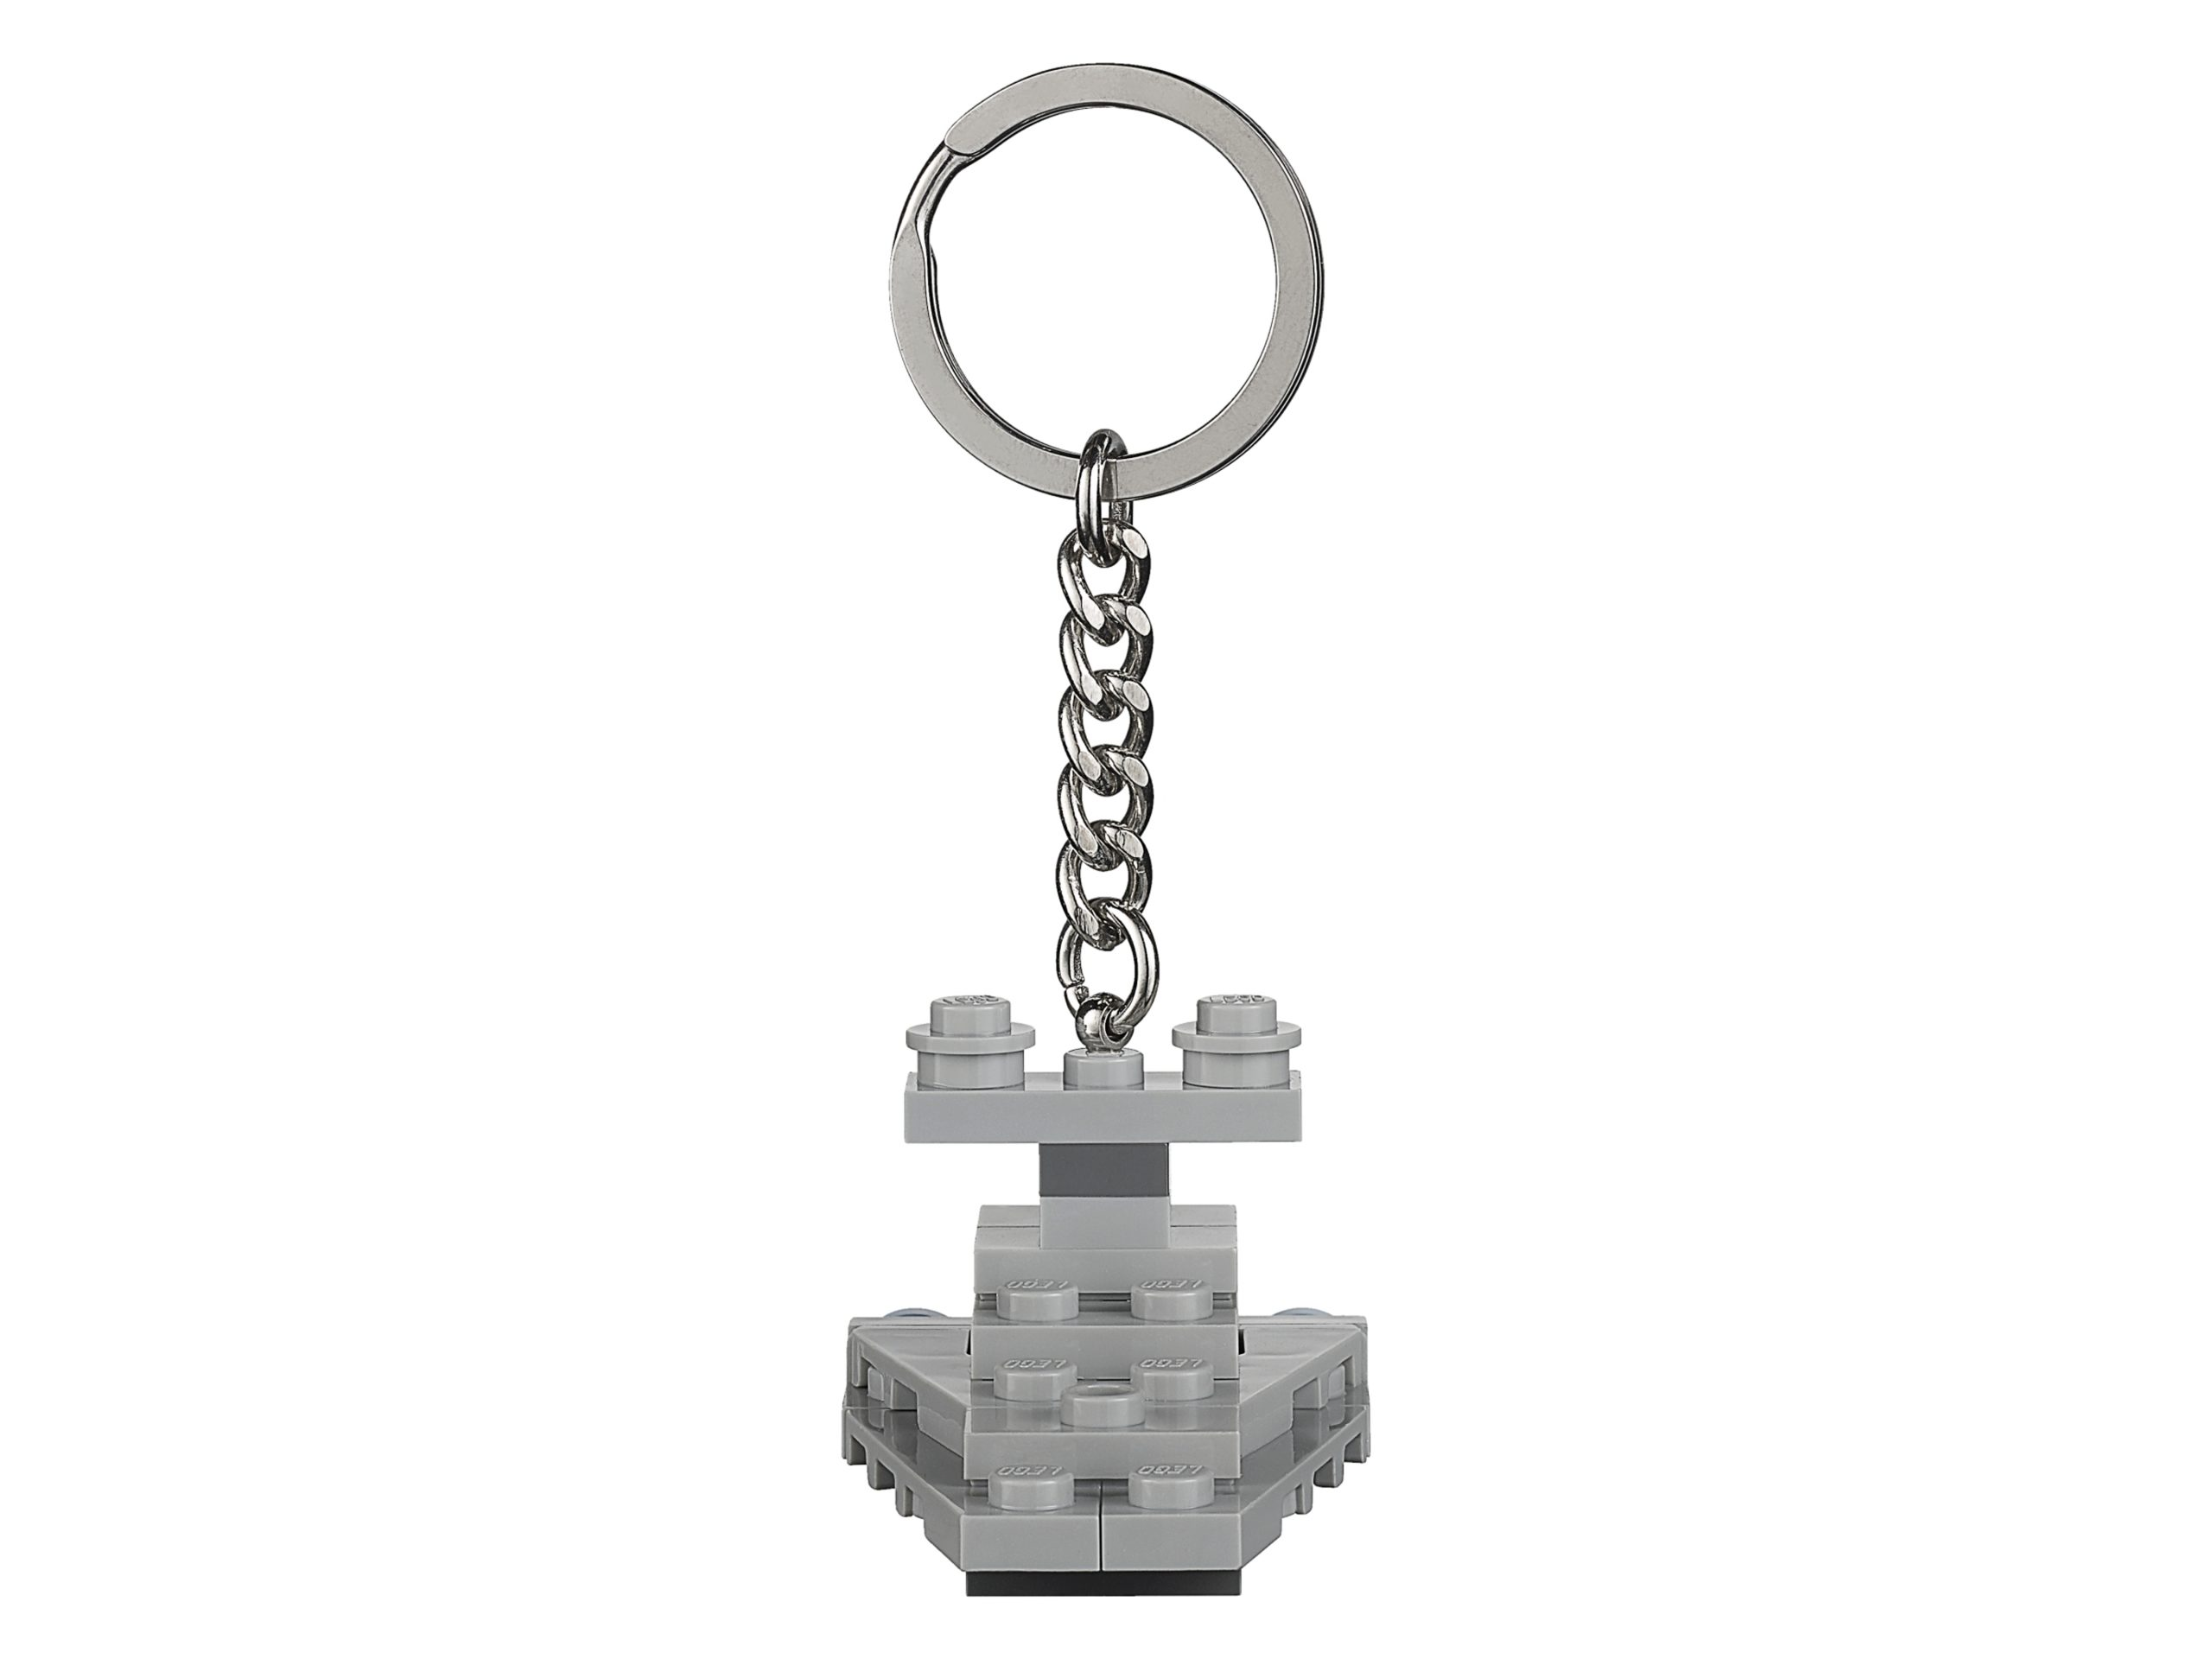 lego 853767 star destroyer bag charm scaled